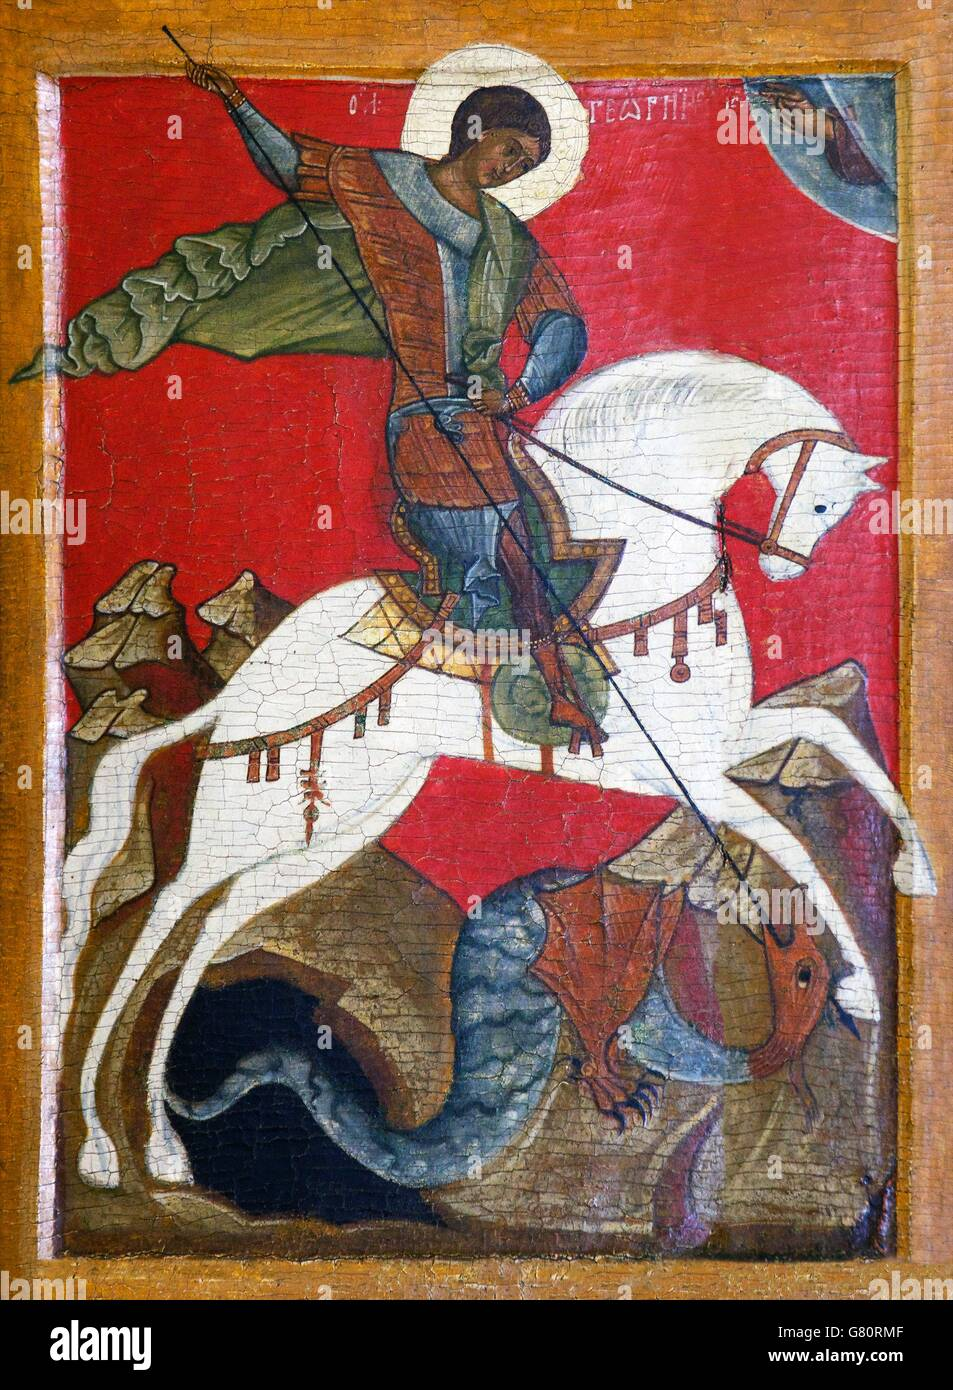 St George and the Dragon, 15th Century, Novgorod, State Russian Museum, Saint Petersburg, Russia - Stock Image